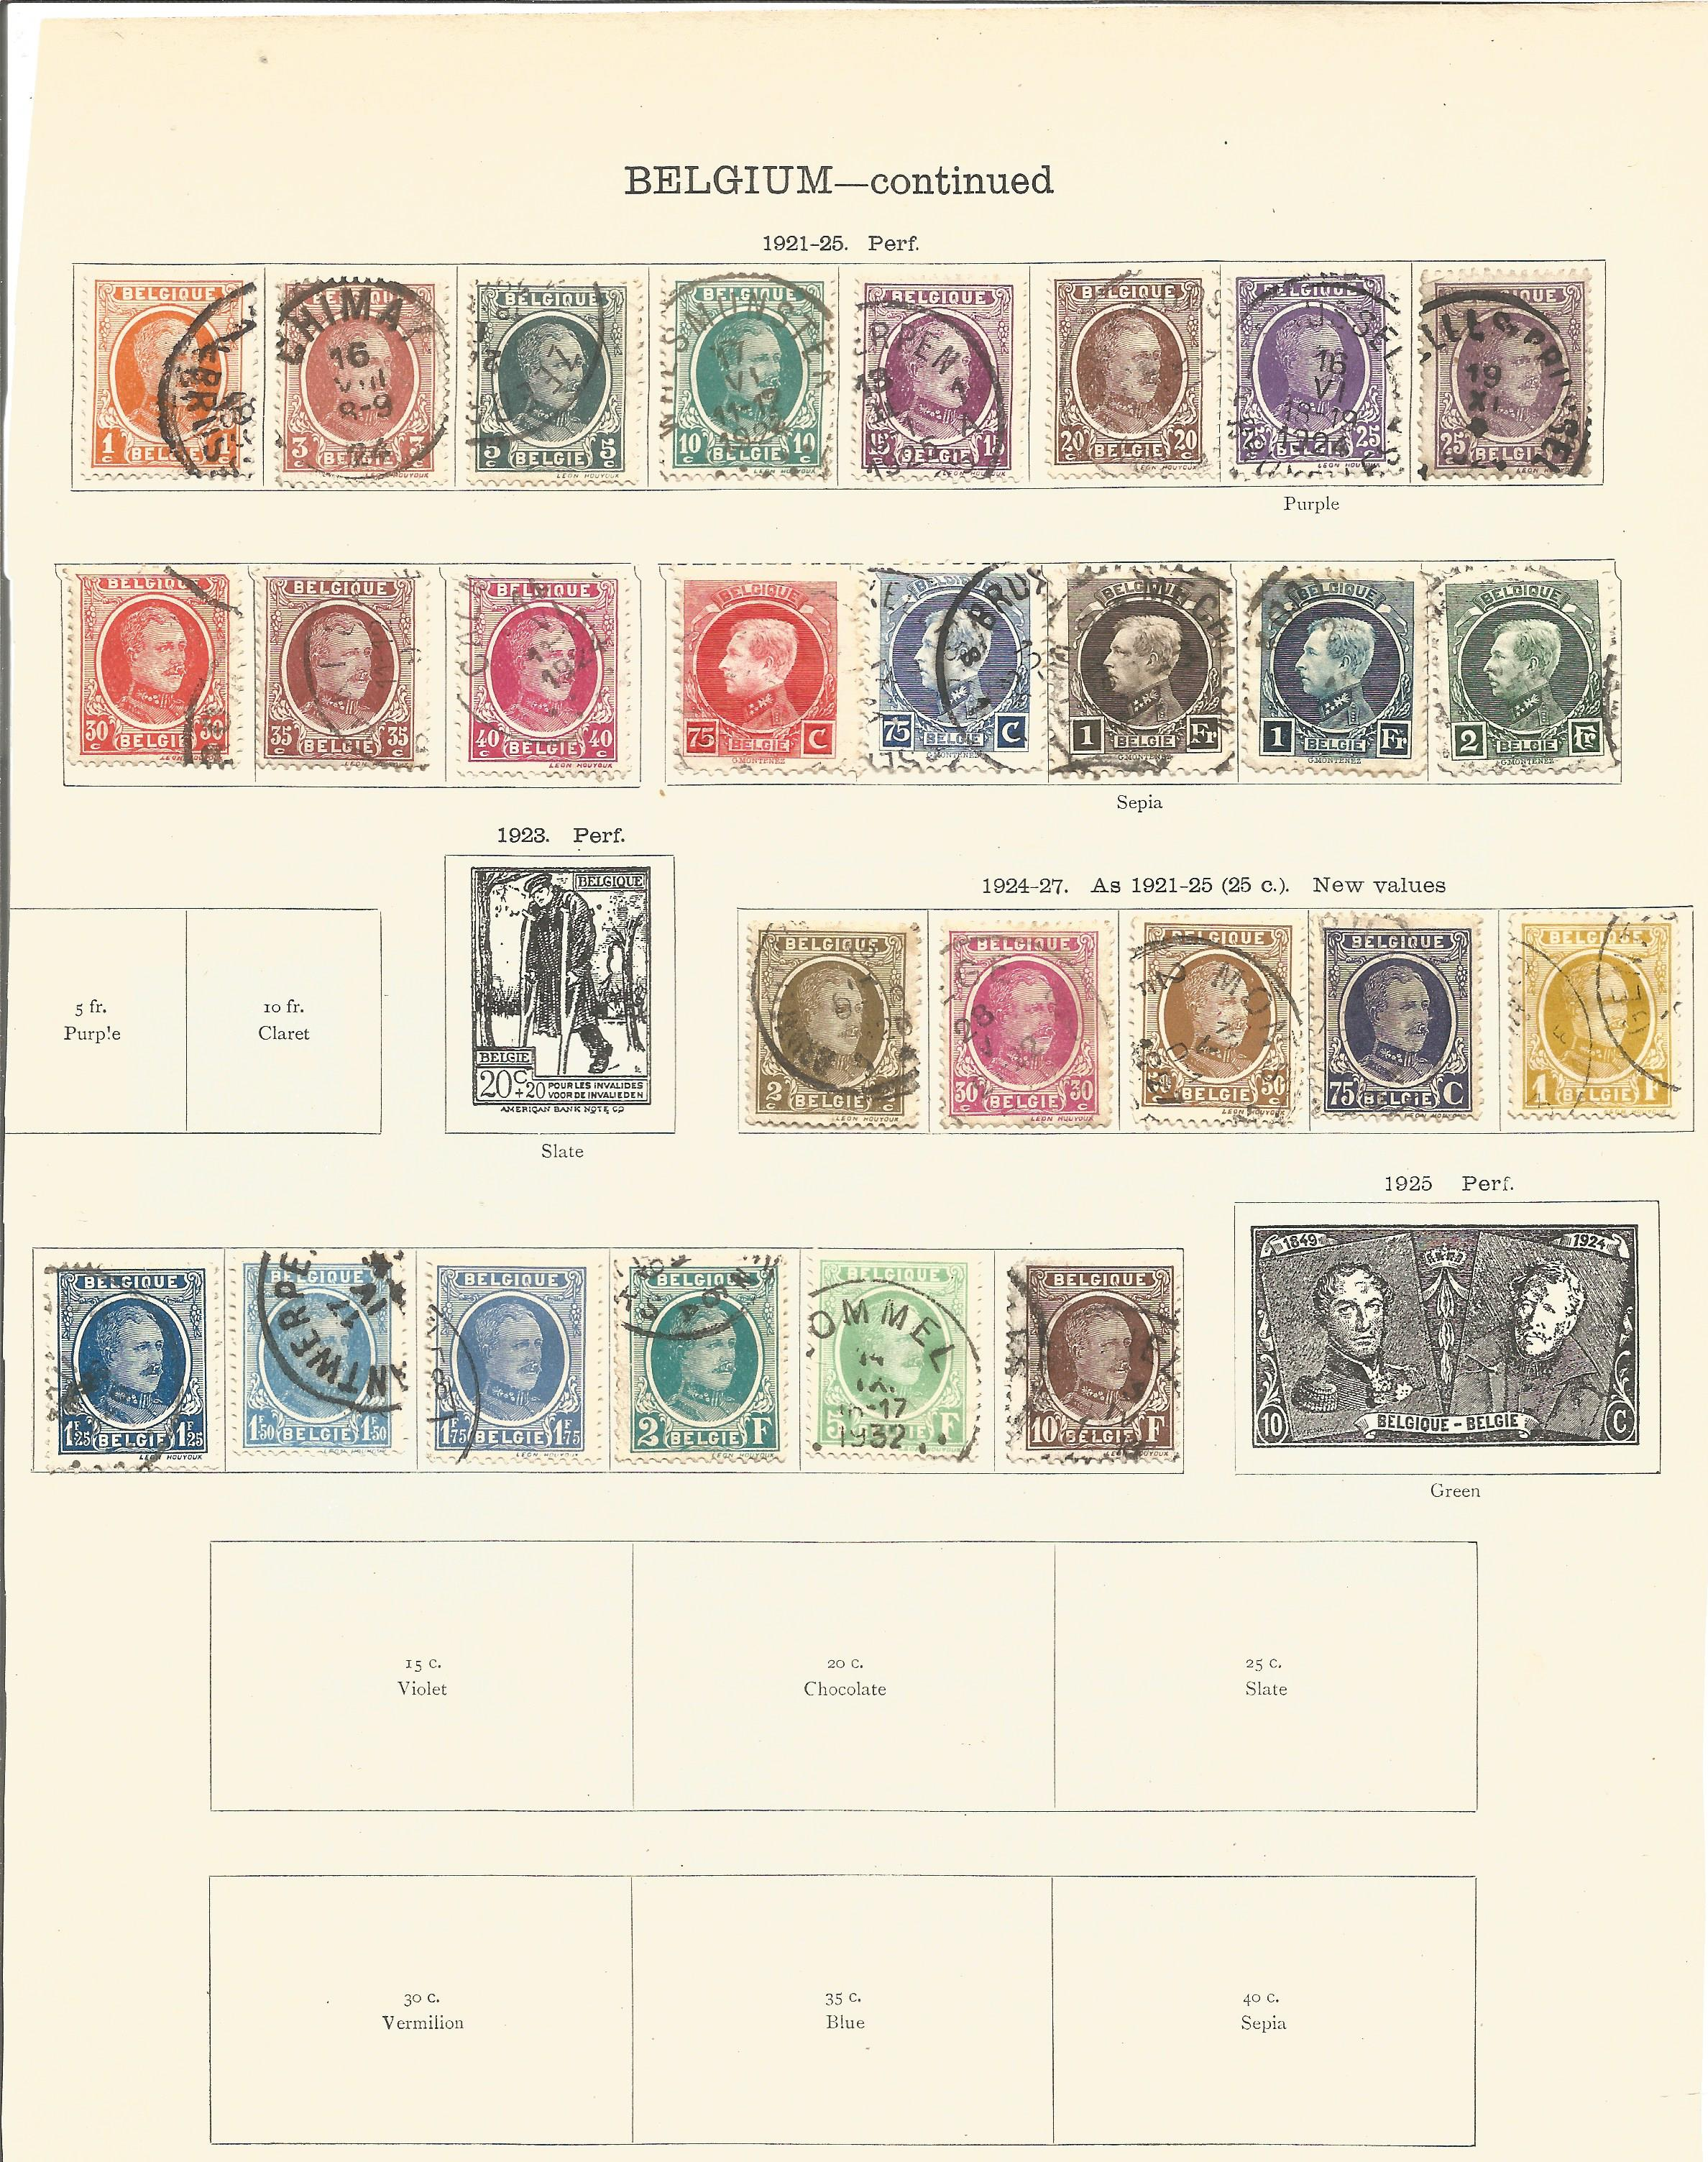 8 loose album pages of stamps from around 1920 including Belgium and Belgian Congo. Good - Image 2 of 2